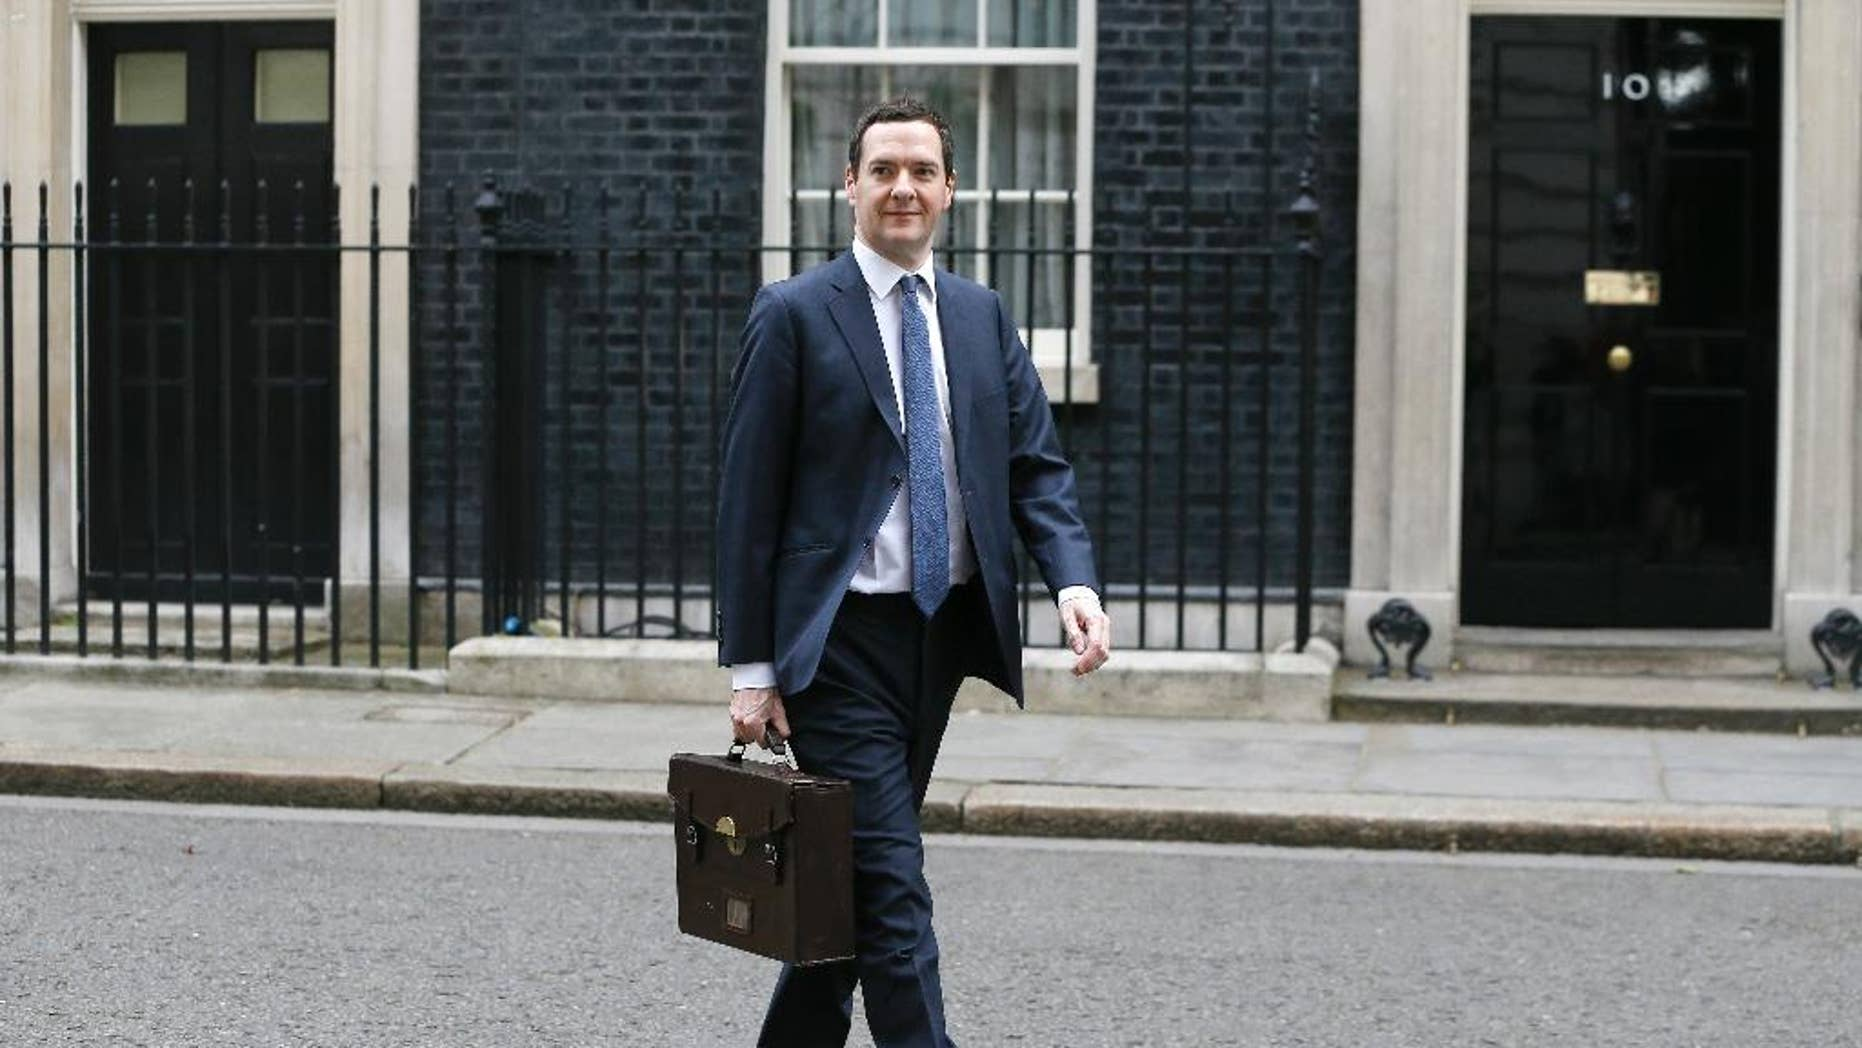 """Britain's Chancellor George Osborne walks across Downing Street on his way to attend a press conference at the Foreign Office with Christine Lagarde of the International Monetary Fund, in London, Friday, May 13, 2016. The International Monetary Fund has warned that London's status as a global financial center would be jeopardized should Britain vote to leave the European Union in a June 23 referendum. The global body that promotes financial stability says in a report Friday that the city's powerful financial services sector would lose clout because of the loss of so-called """"passporting'' rights. These rights allow professionals to work in any EU country, without seeking licenses. (AP Photo/Kirsty Wigglesworth)"""